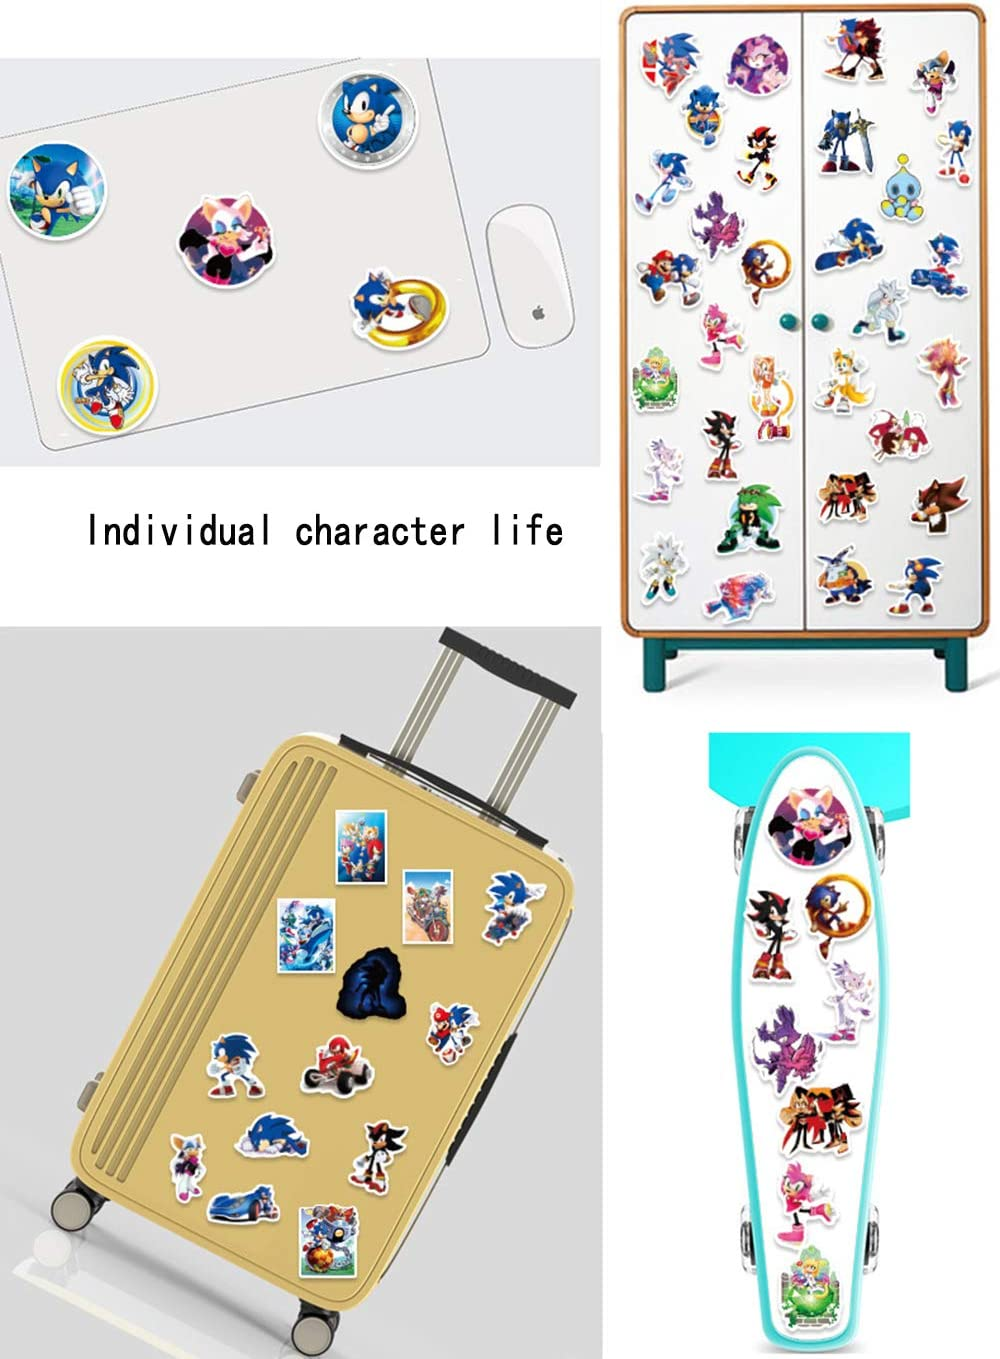 Sonic The Hedgehog Creative DIY Stickers Funny Decorative Cartoon for Cartoon PC Luggage Computer Notebook Phone Home Wall Garden Window Snowboard 50pcs